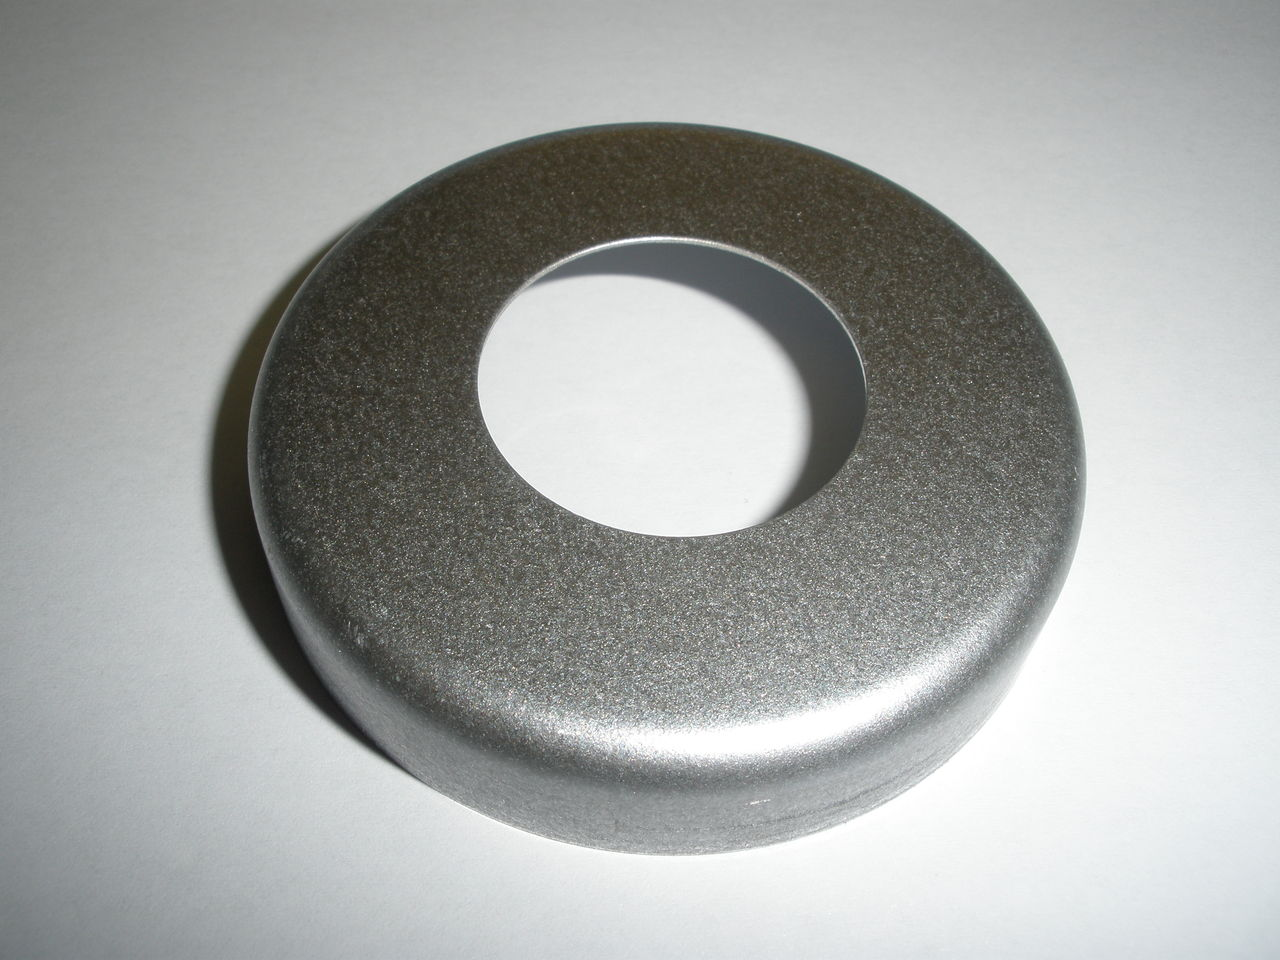 Cover Ball Race OEM part